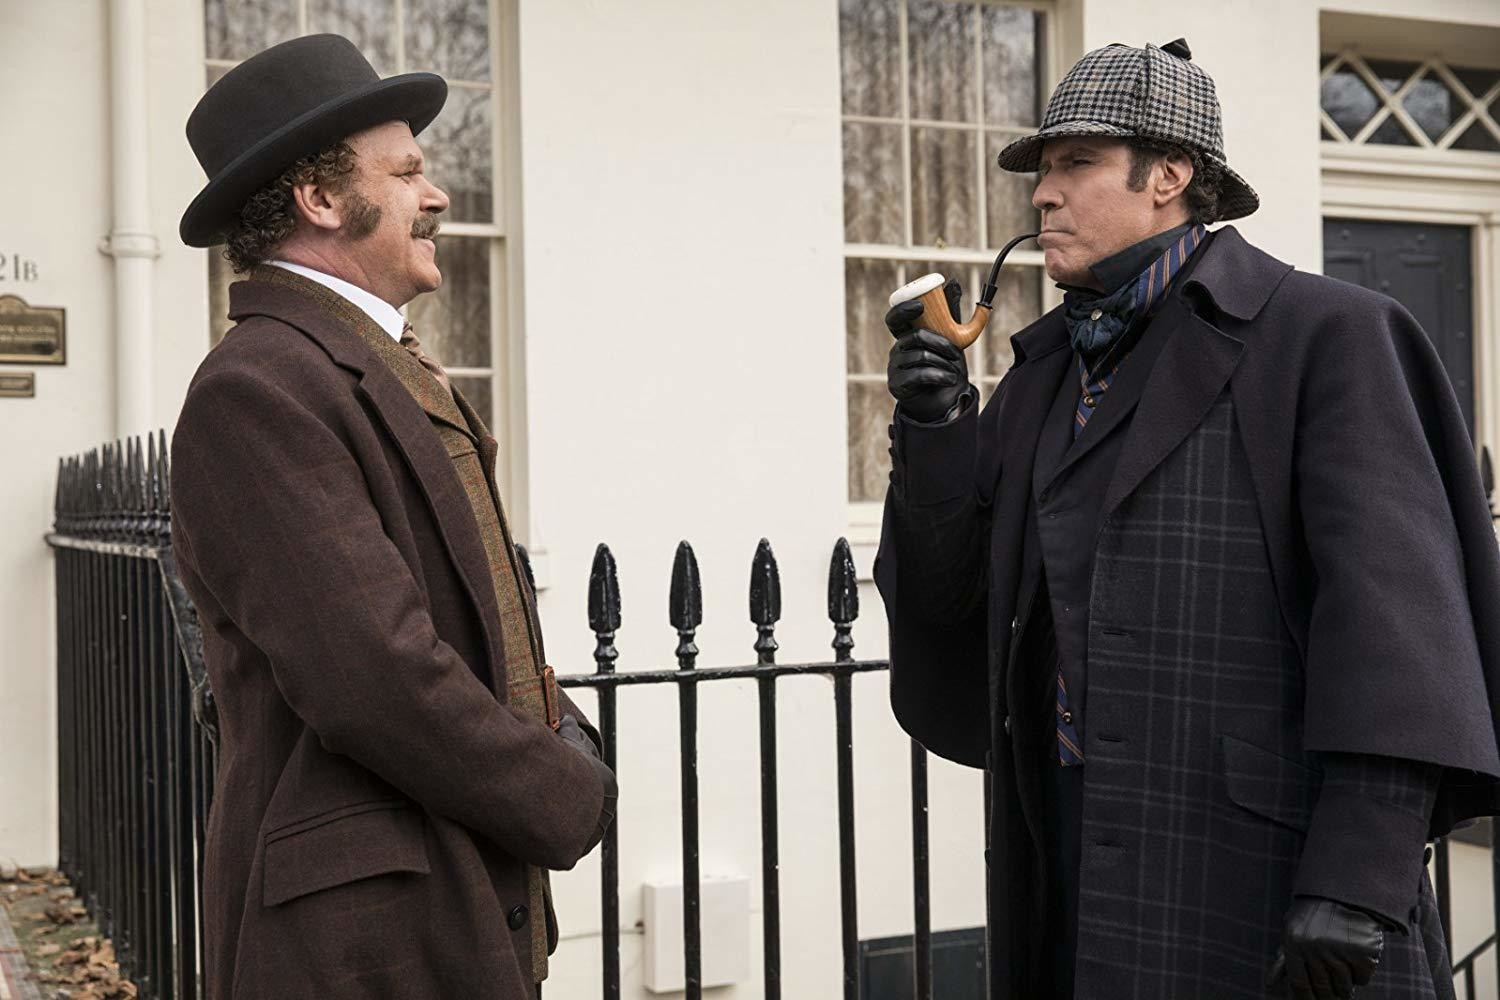 'Holmes & Watson' Got Zero Percent On Rotten Tomatoes, A New Low For Will Ferrell And John C. Reilly